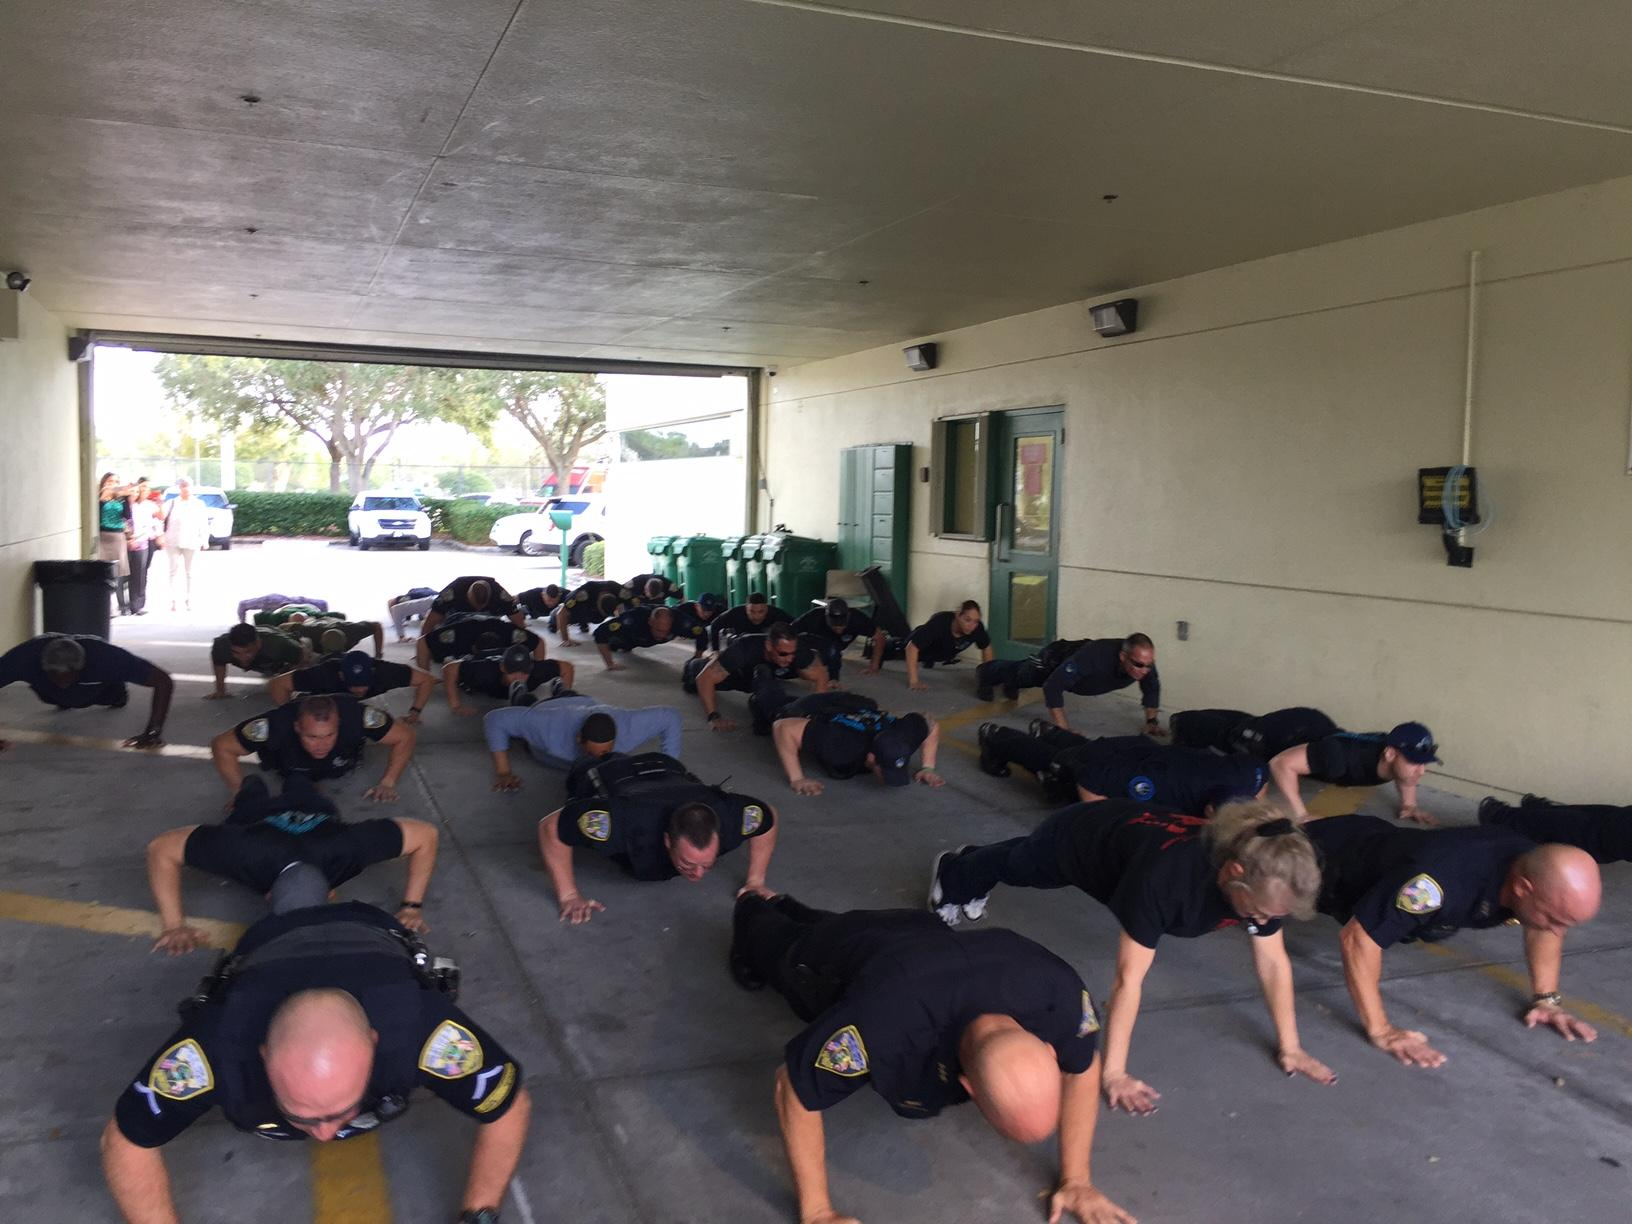 the project overwatch suicide prevention pushup challenge comes to the project overwatch suicide prevention pushup challenge comes to the treasure coast